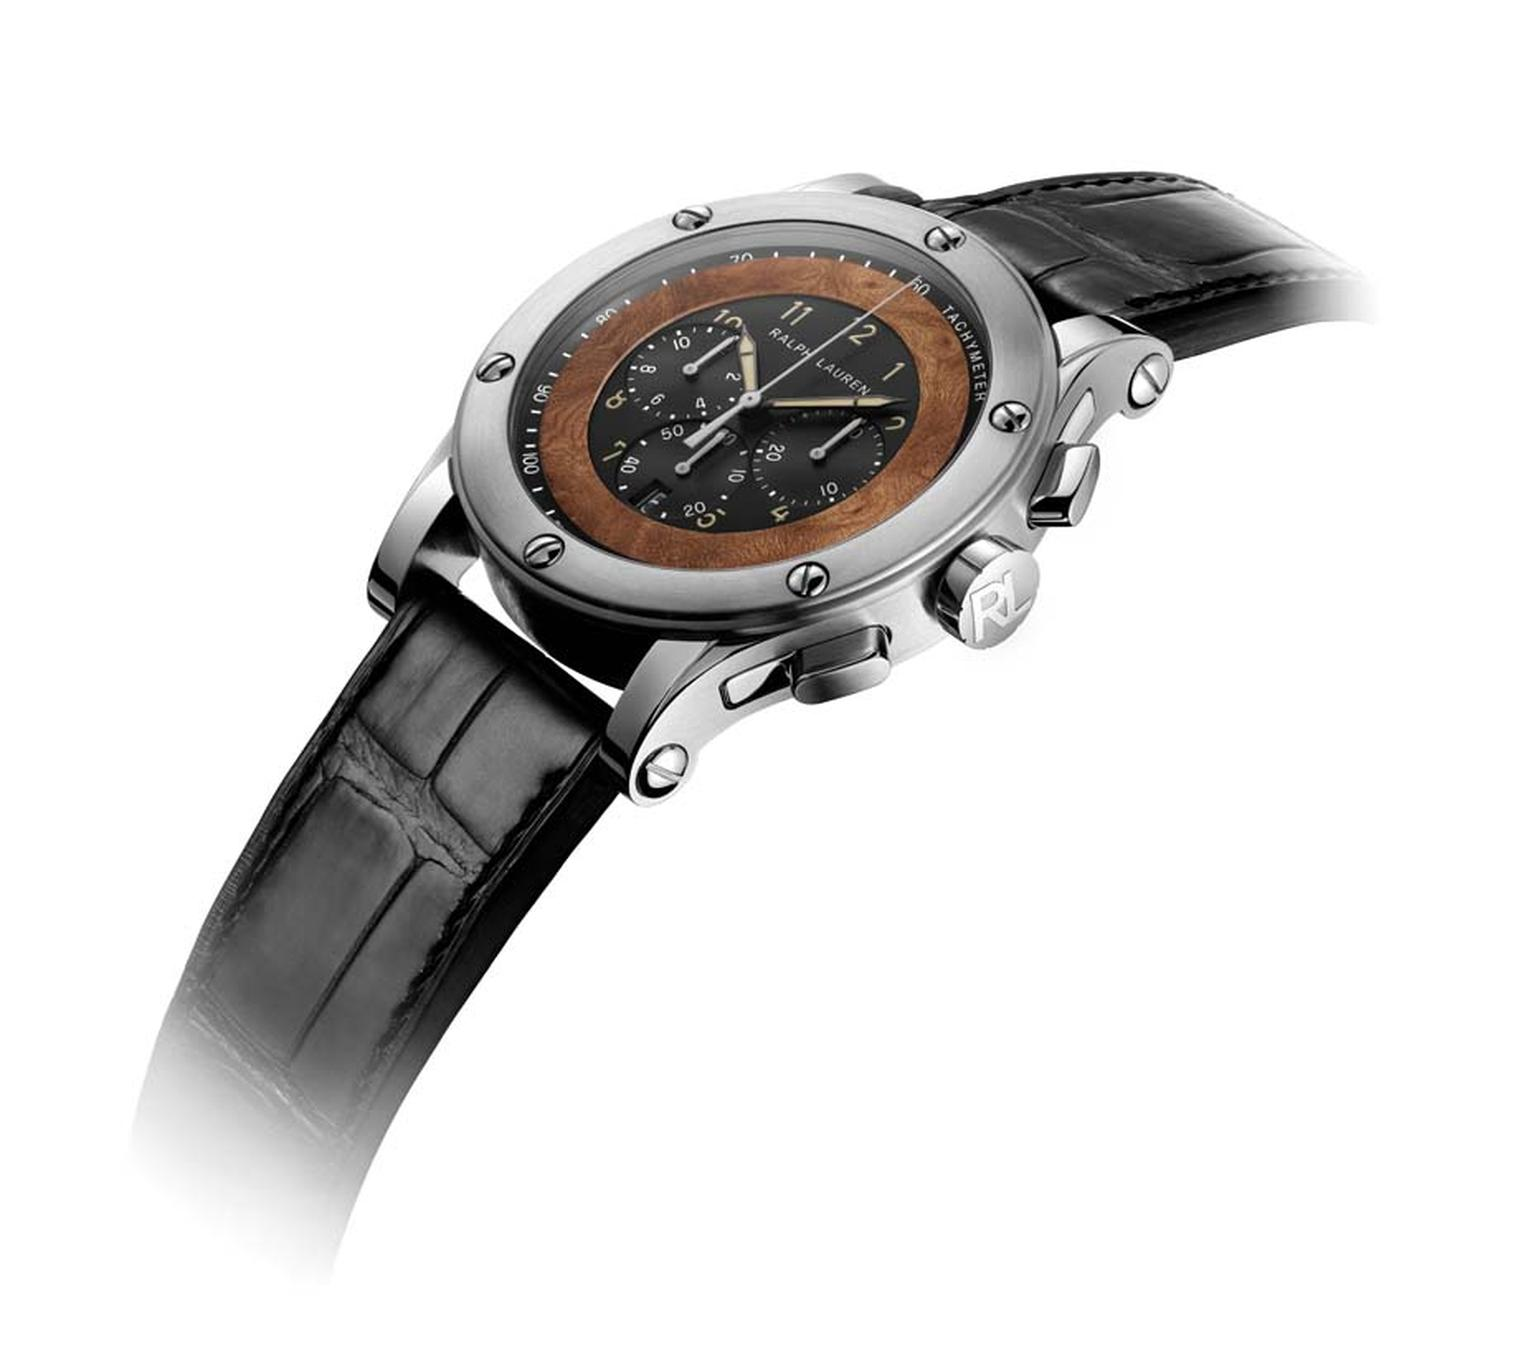 The new Ralph Lauren 45 mm Automotive Chronograph watch is a wonderful tribute to one of Ralph Lauren's favourite cars, his sleek Bugatti 57CS Coupé, which car enthusiasts around the world will remember as the winner of the Villa d'Este automobile beauty